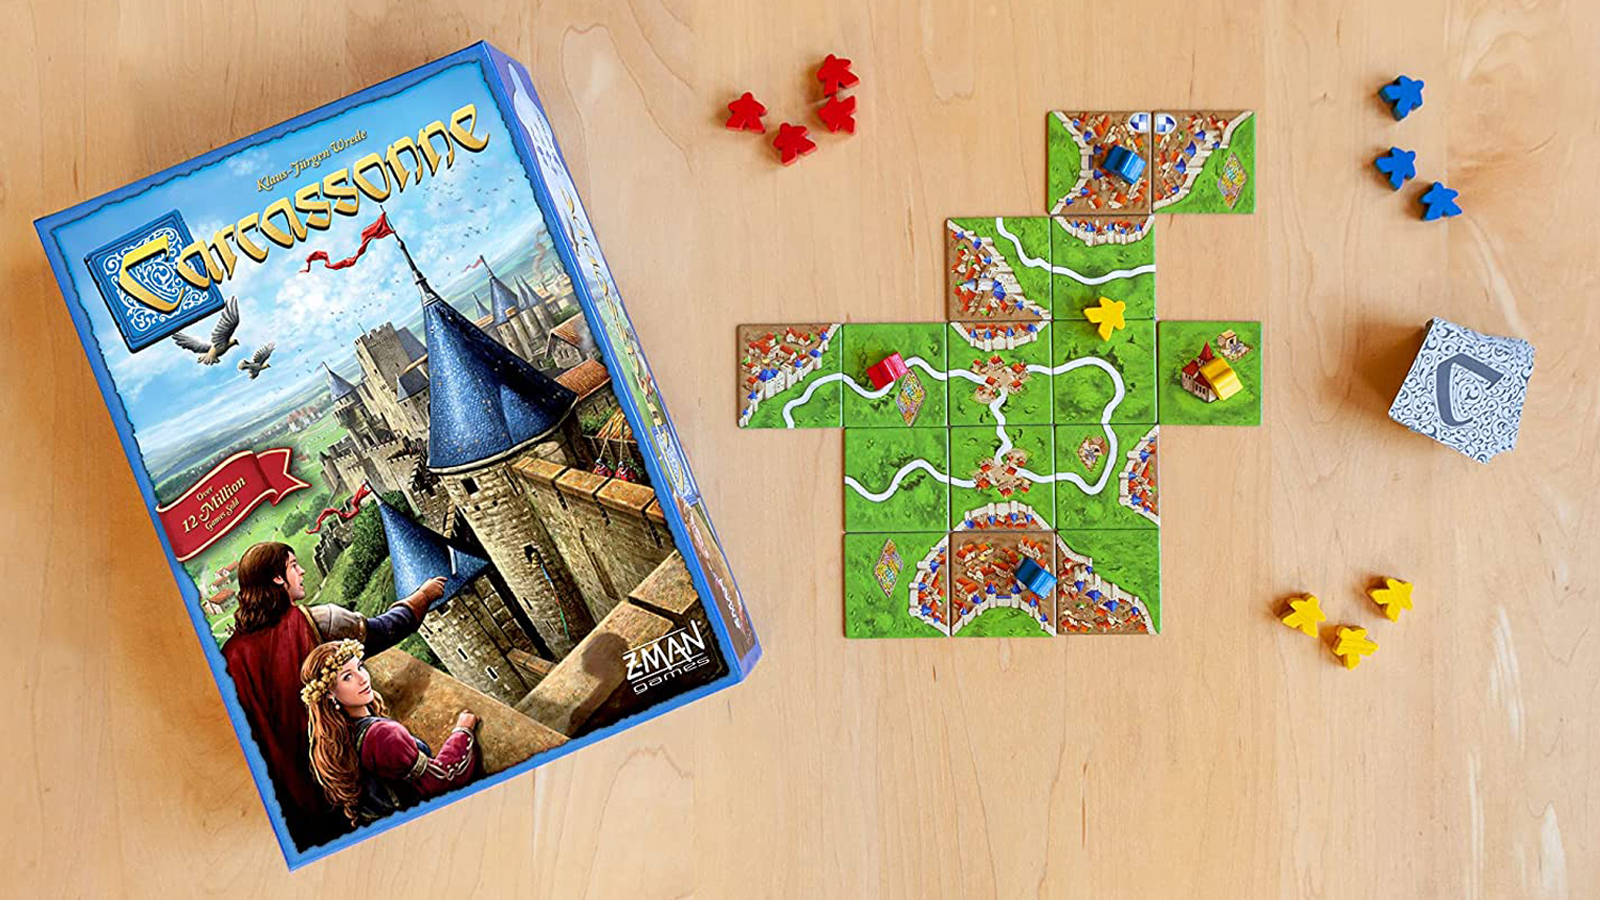 Carcassonne board game box on wooden table next to tiles and meeples